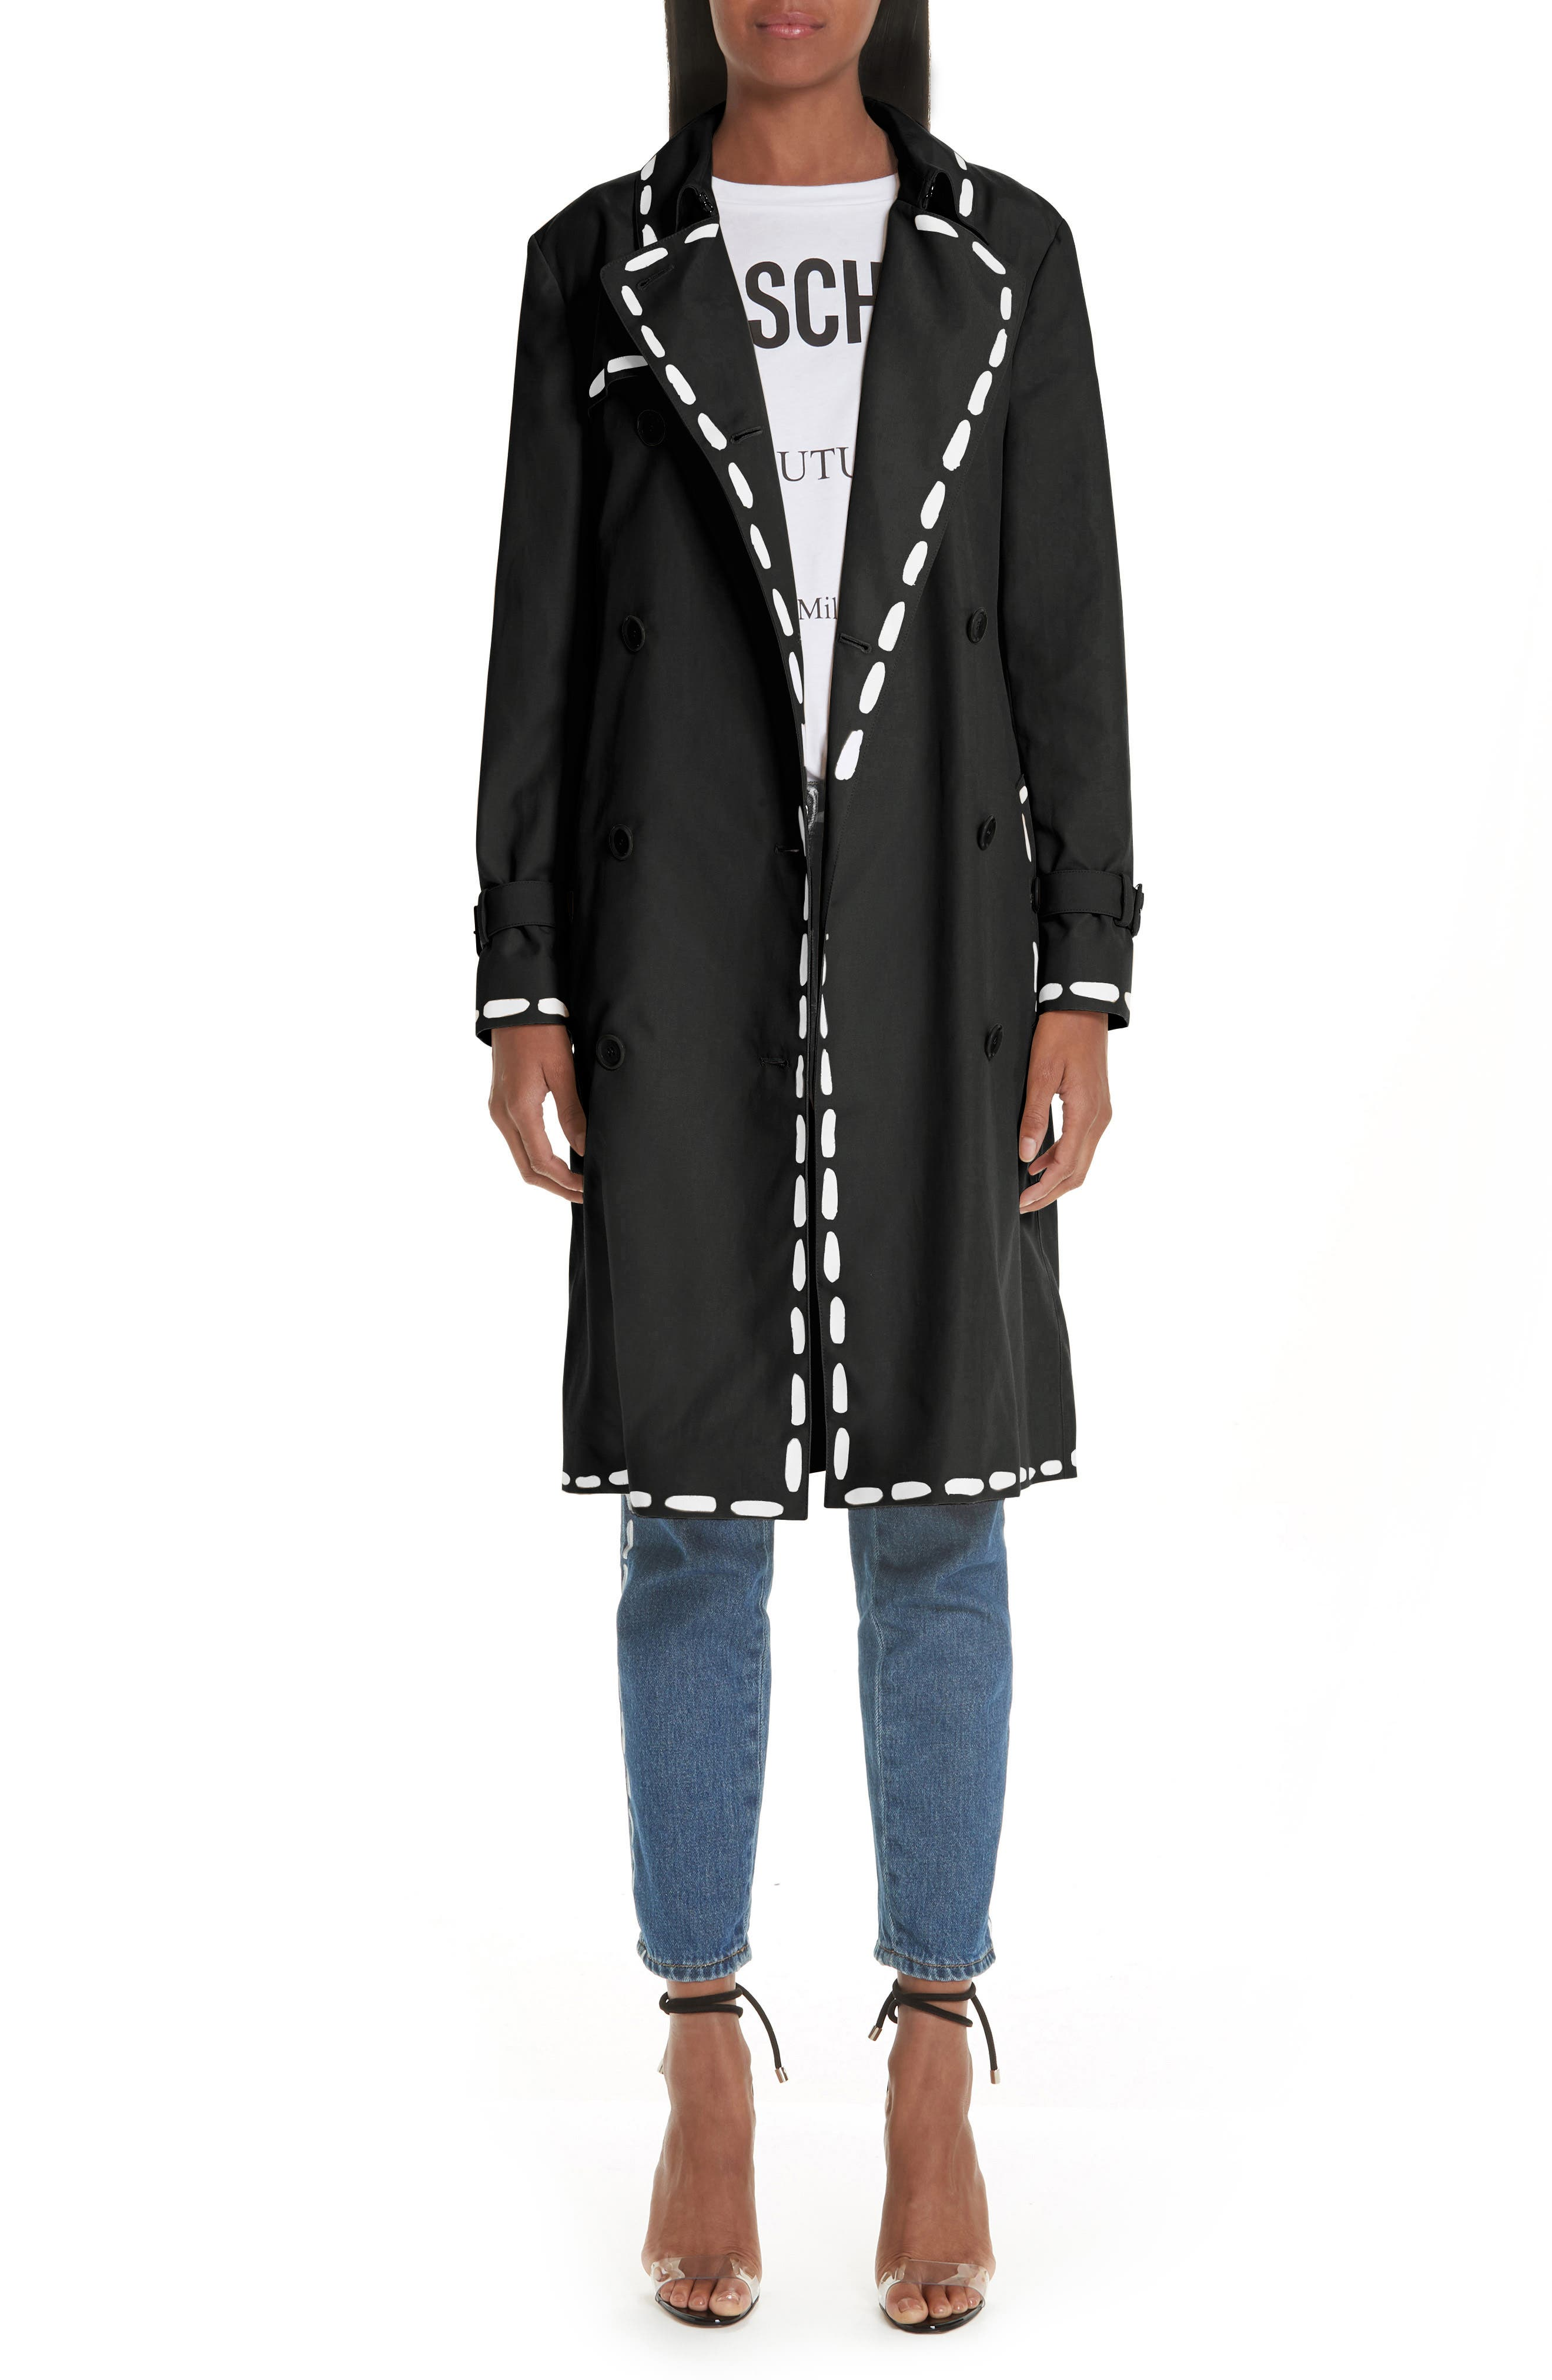 MOSCHINO, Dotted Line Trench Coat, Alternate thumbnail 7, color, BLACK